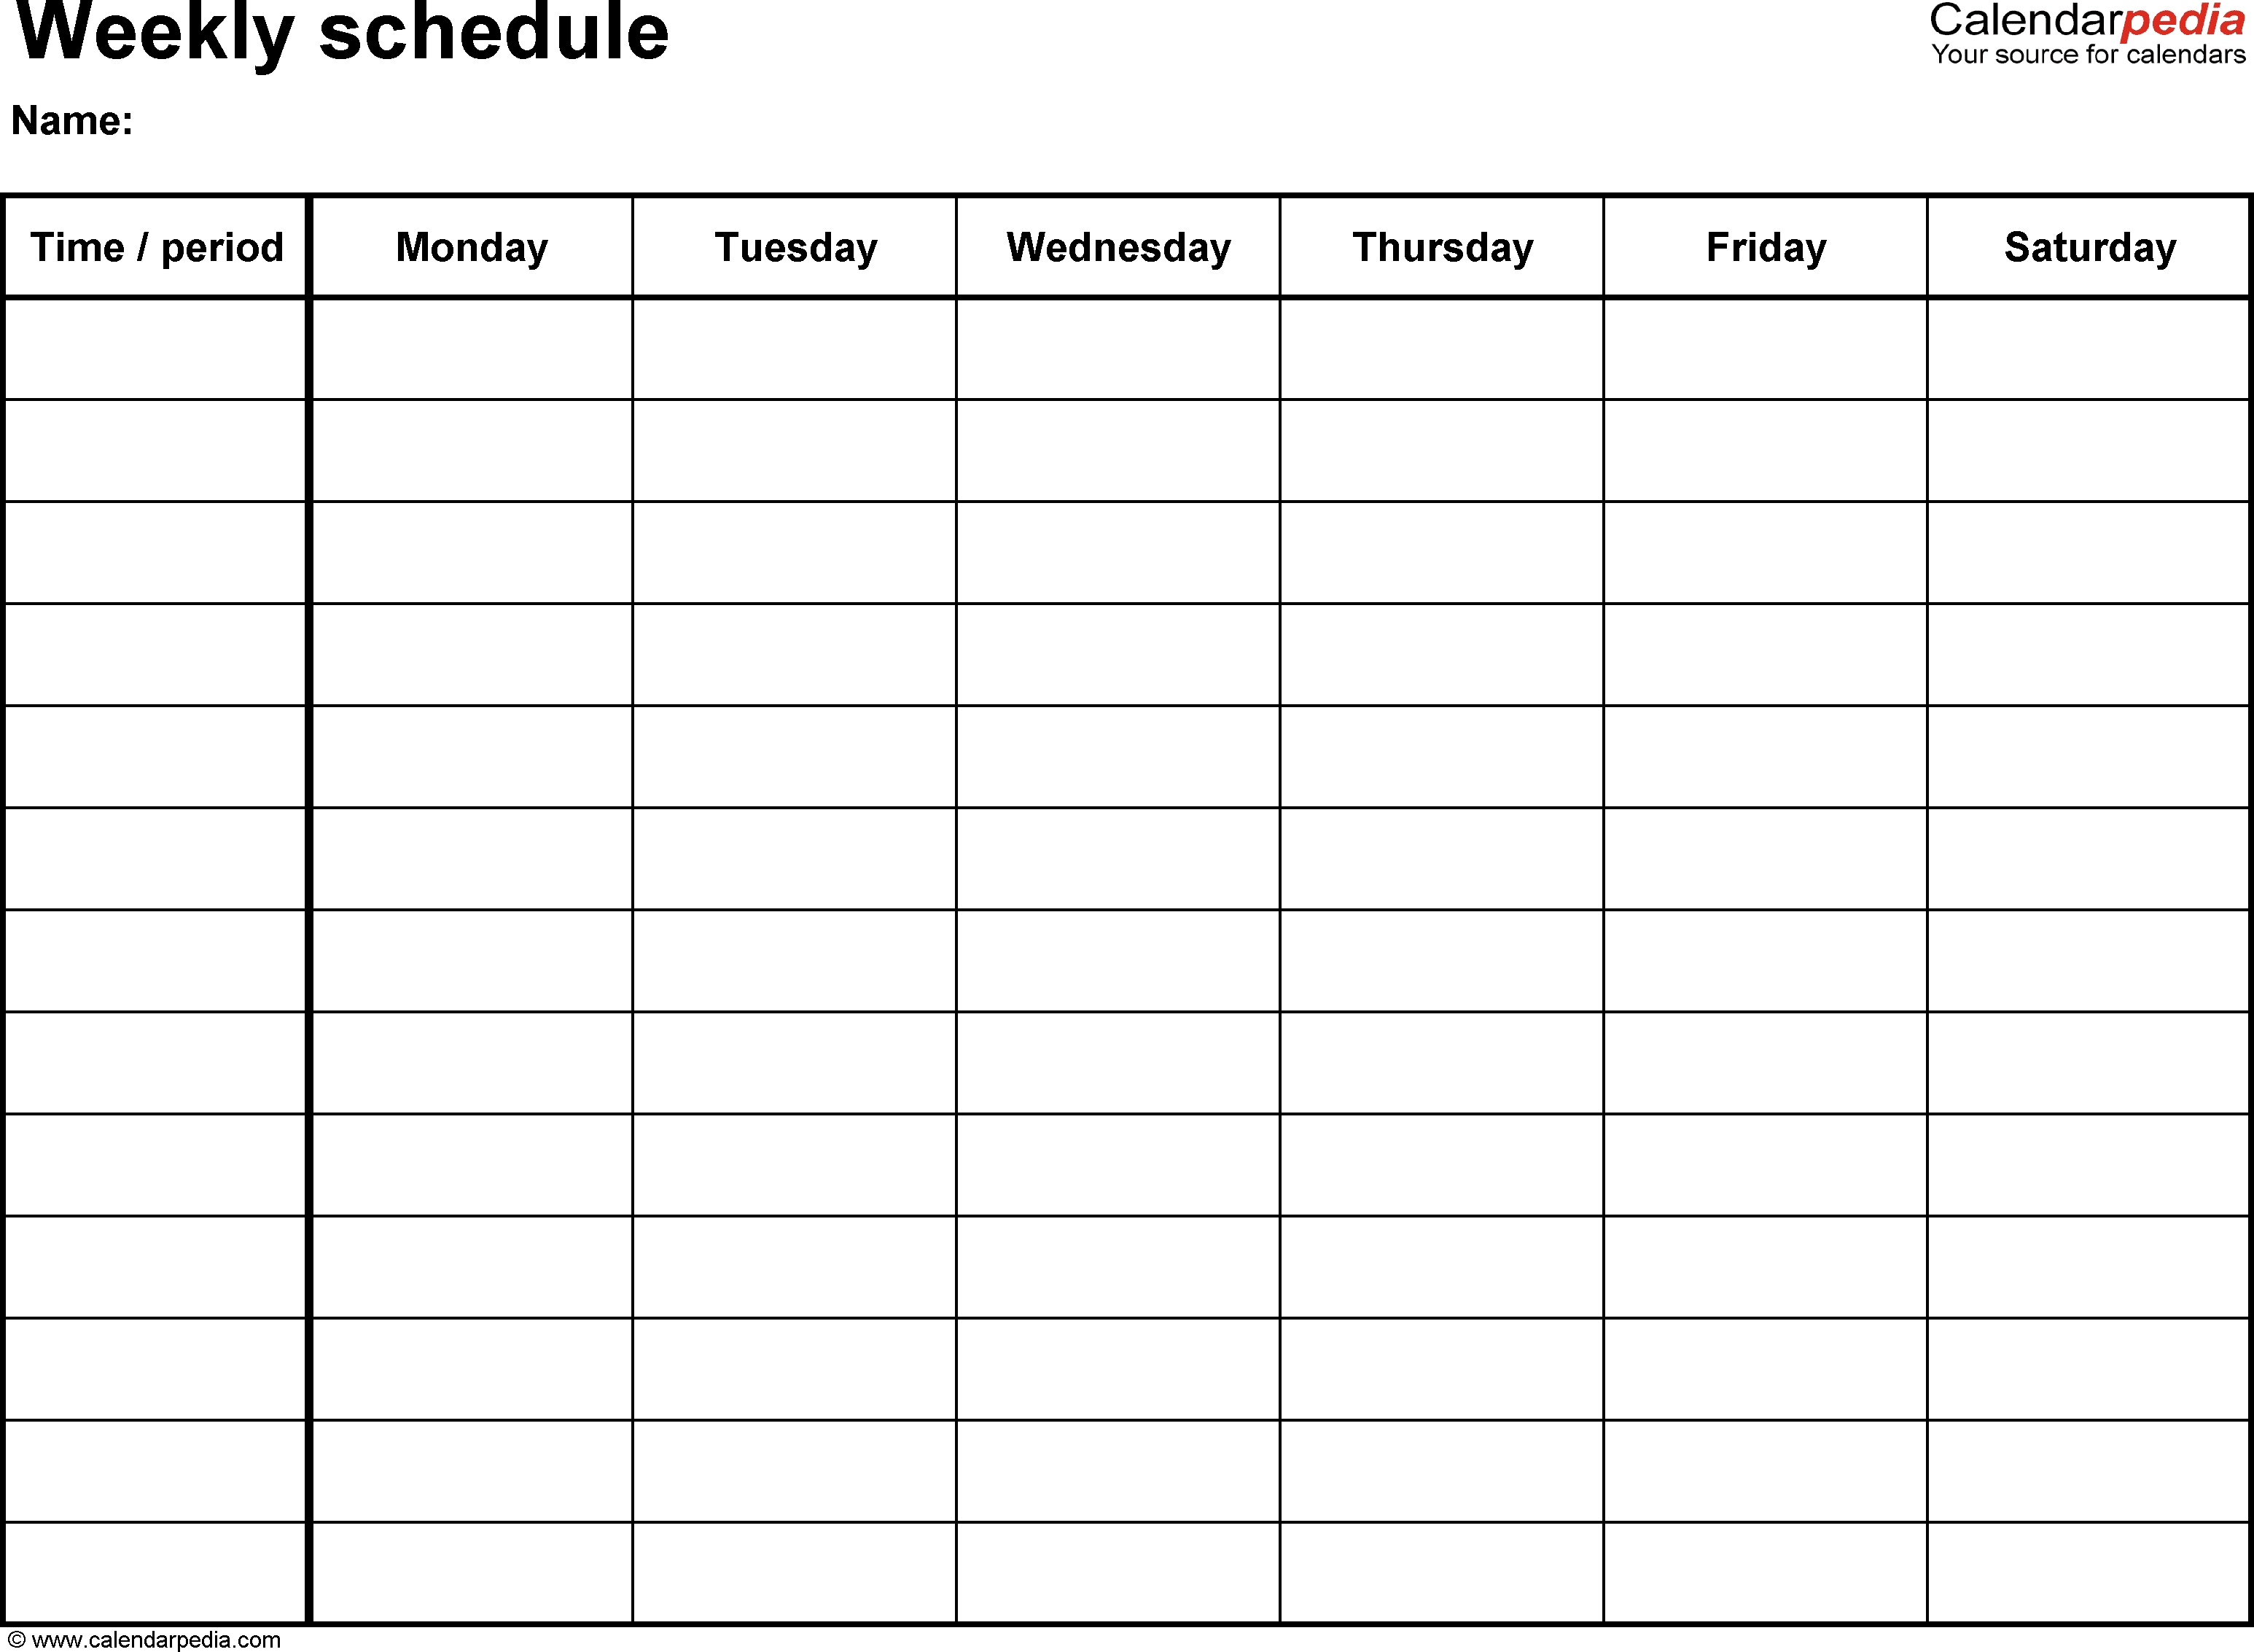 Free Weekly Schedule Templates For Excel - 18 Templates for Blank Schedule Sheet With Times